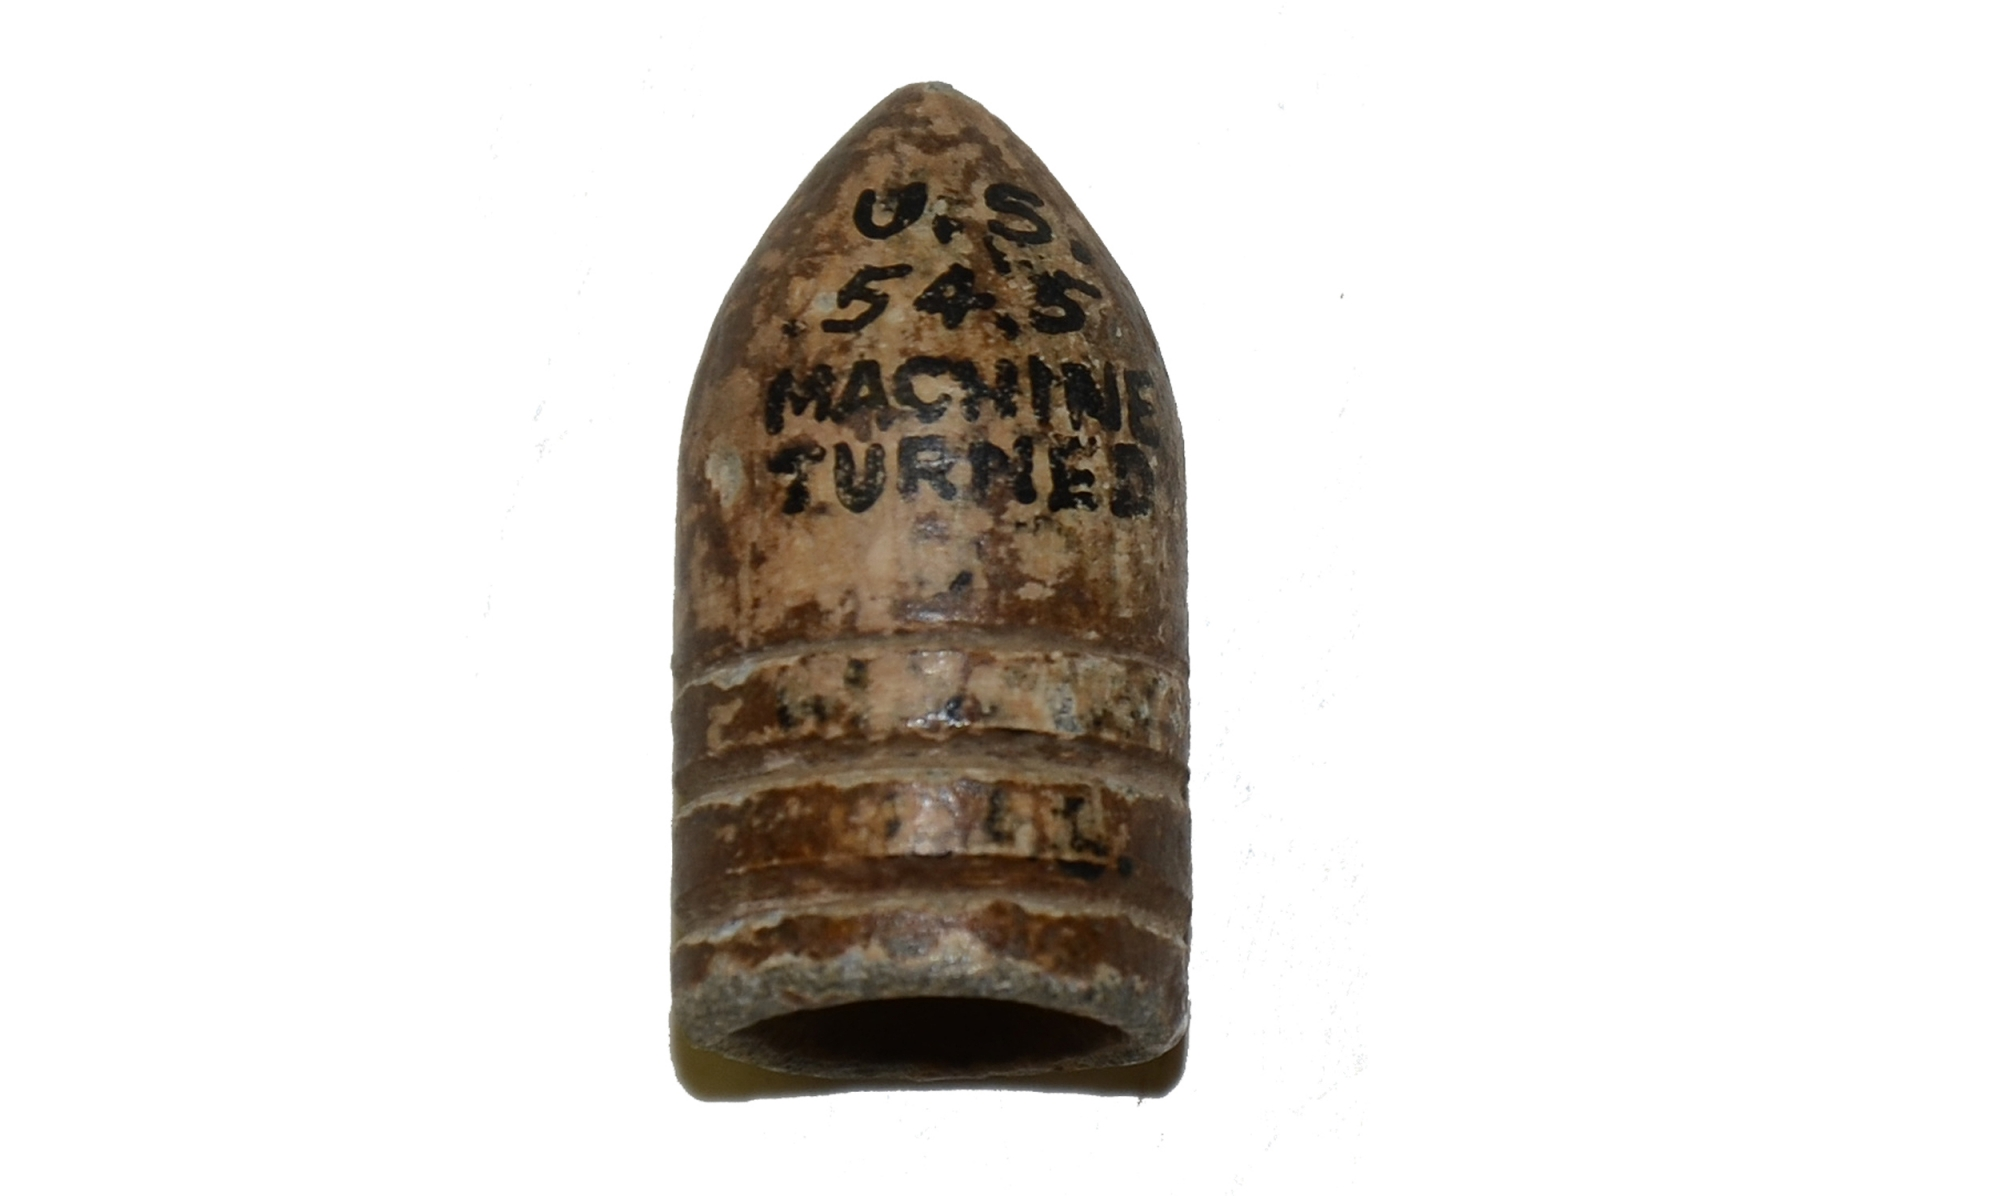 U.S. .54 MACHINE TURNED BULLET FROM THE MAC MASON COLLECTION